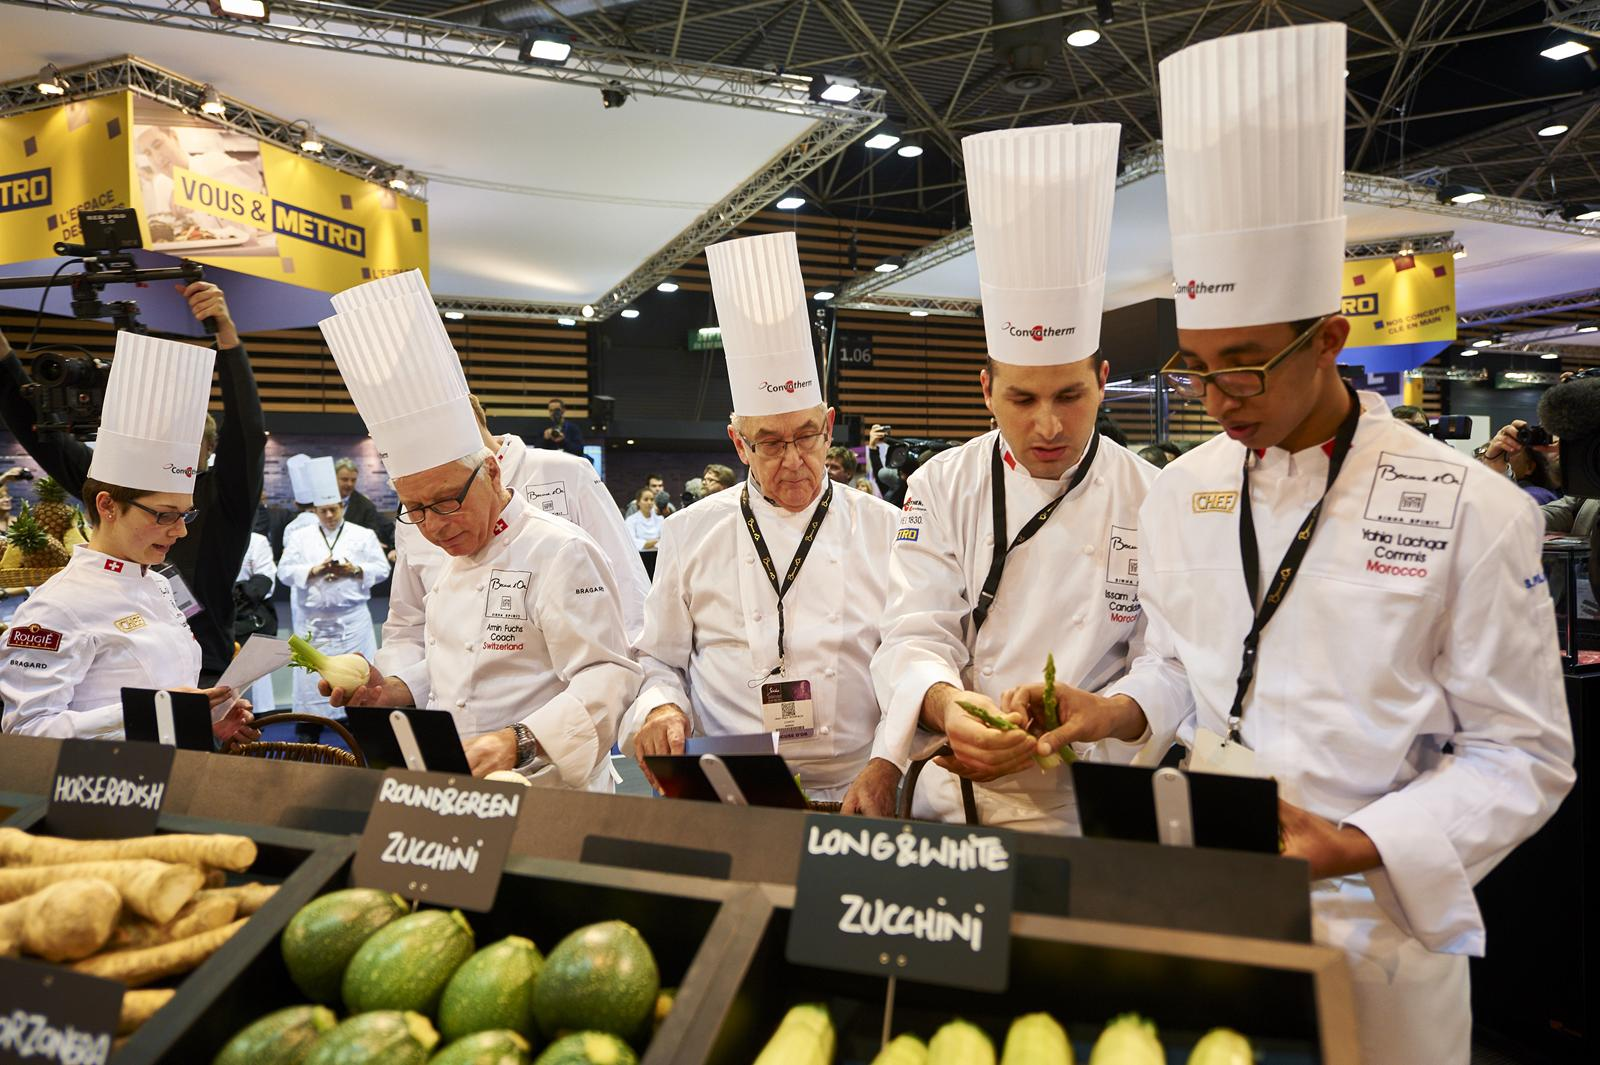 Bocuse-dor-new-zealand-gallery-4